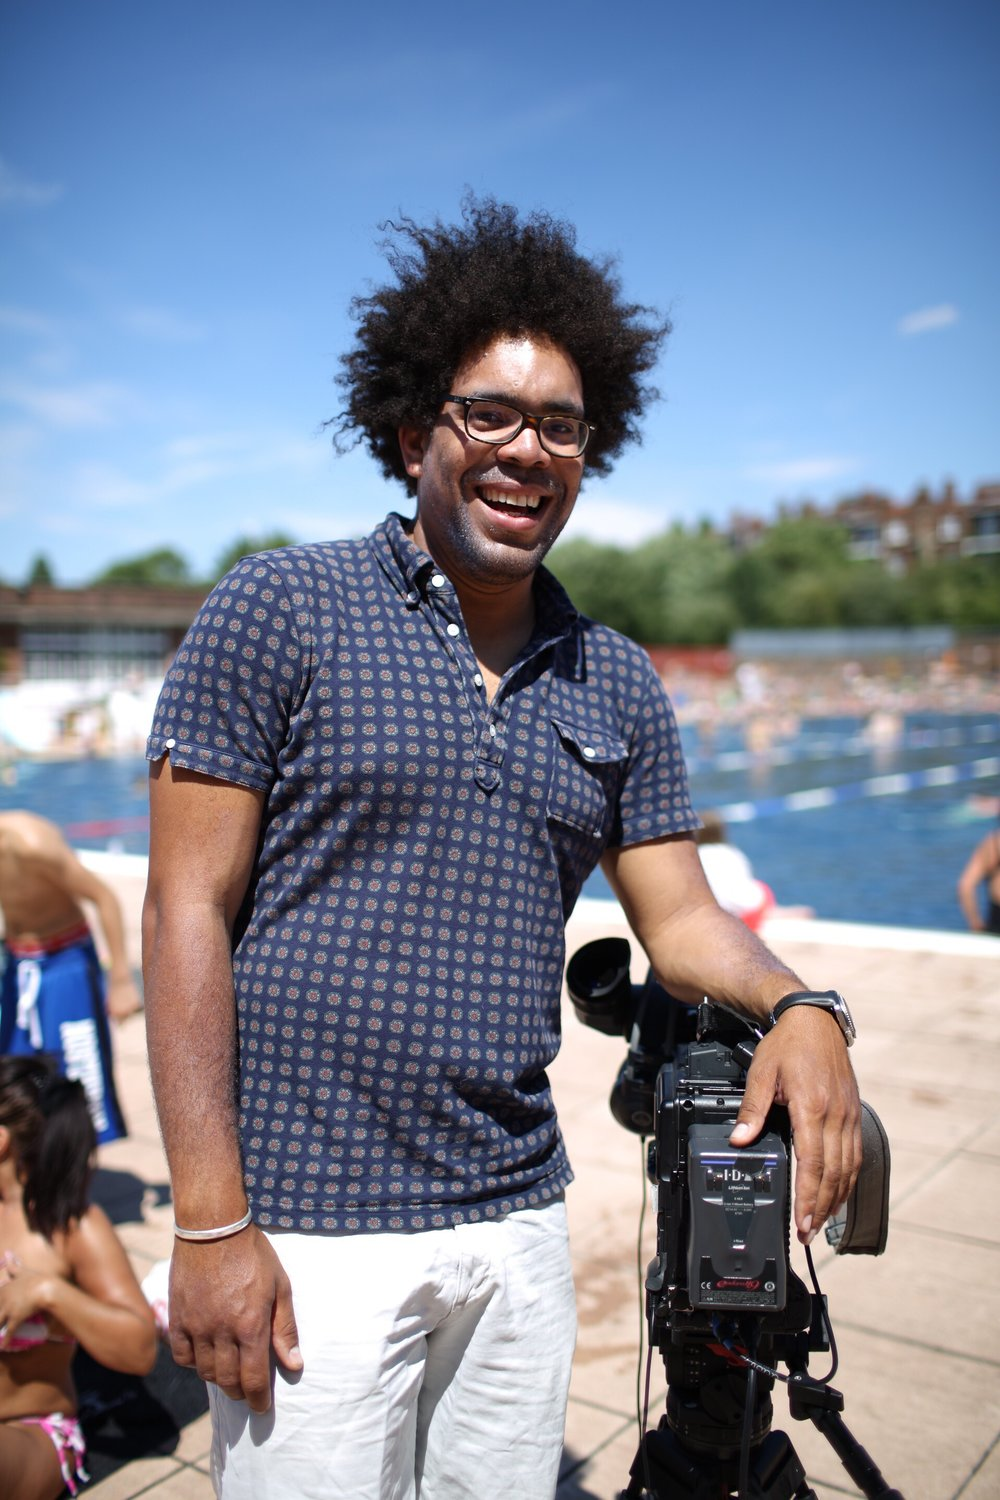 II met Ian at the lido. He's a cameraman and was filming Ellie Simmonds for the SwimBritain Challenge. We didn't have long to chat because Ian was working. He told me that he'd just moved back to London to the very area he grew up in, after living out of town in the countryside. He's rediscovering London again.